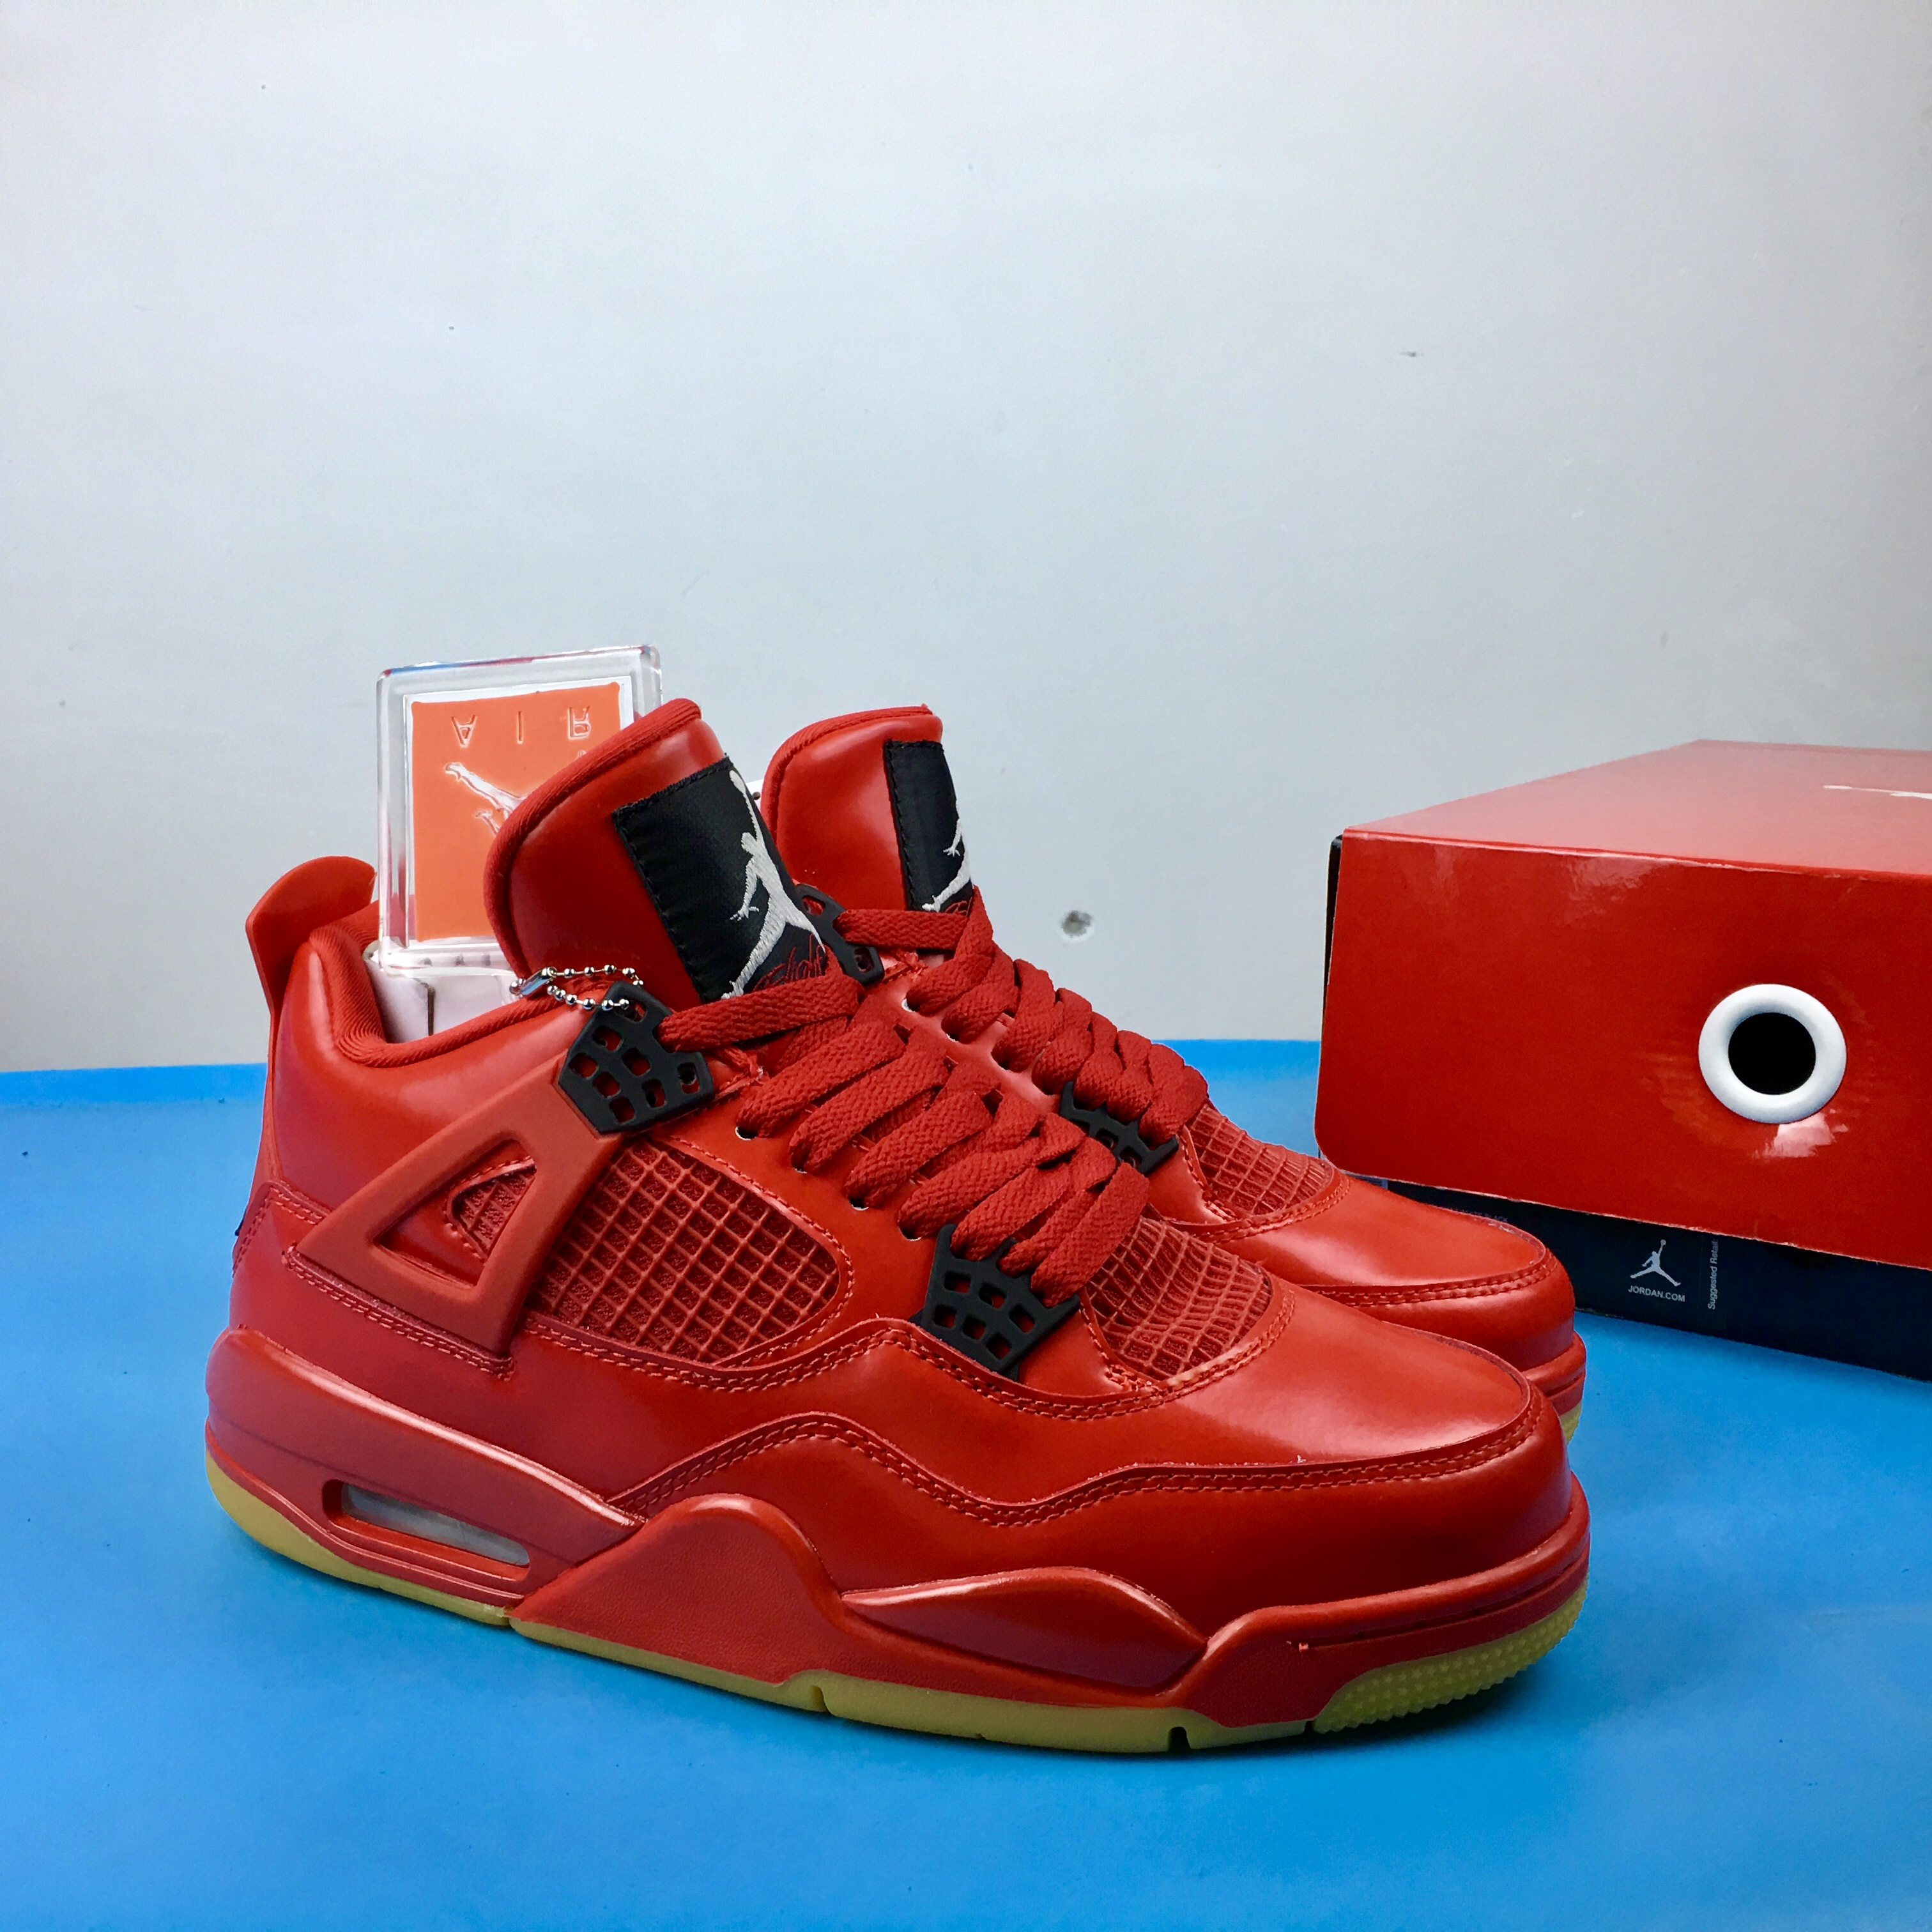 Air Jordan 4 Singles Day All Red Gum Sole Shoes